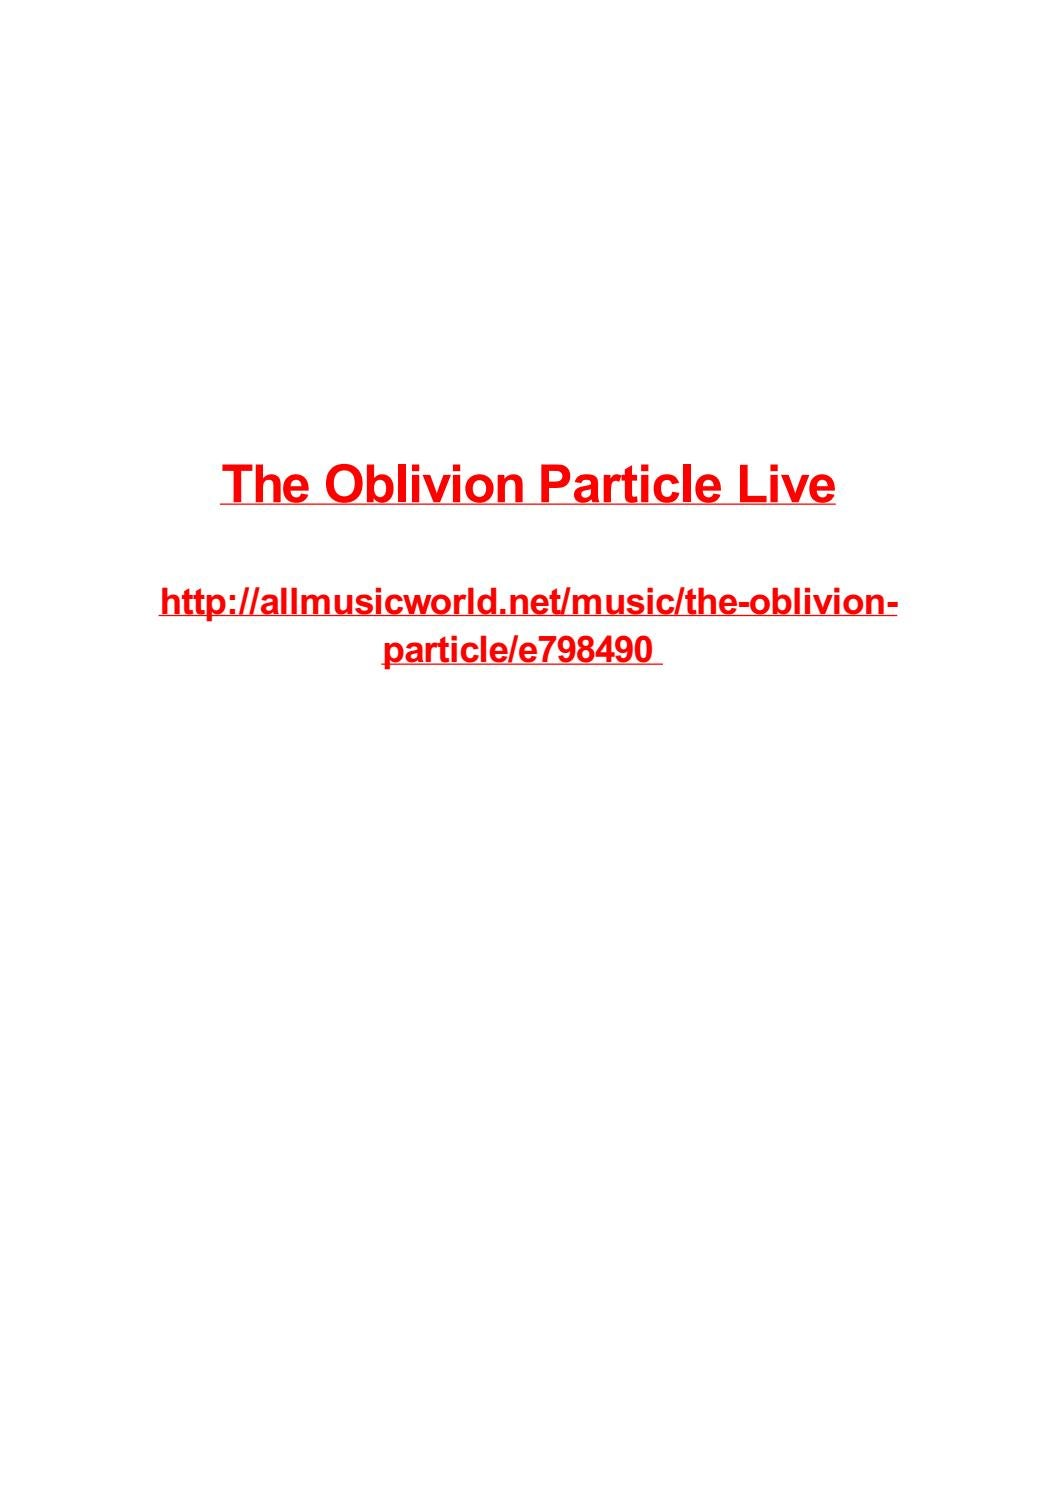 The Oblivion Particle Live By Frank Seamons Issuu